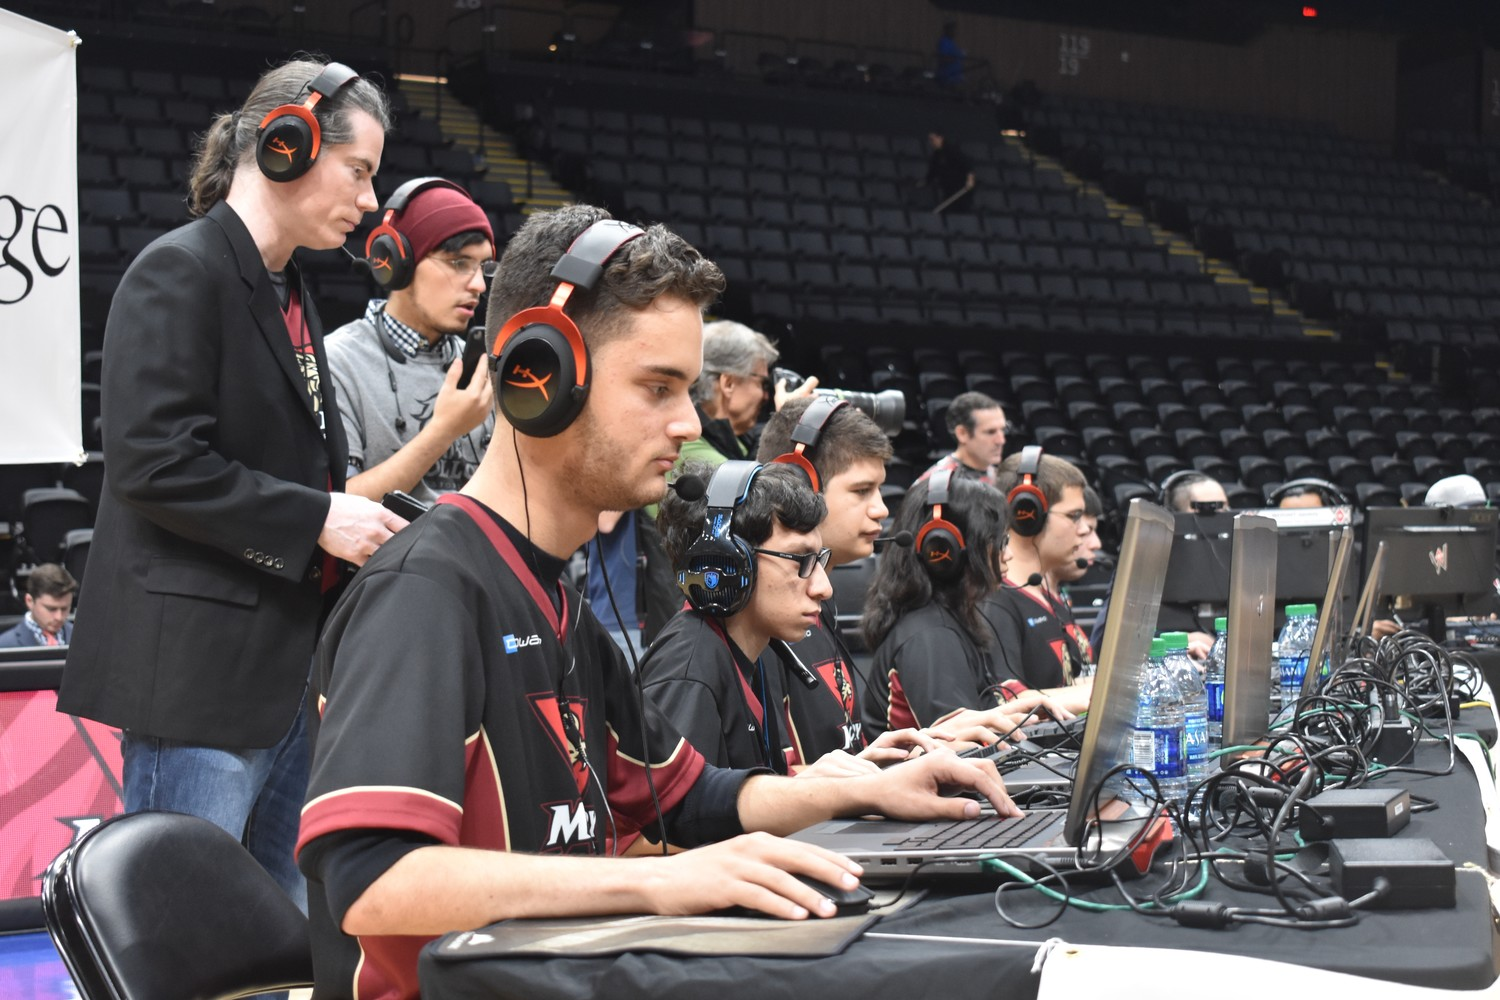 Molloy students Steven Rizzo, closest, Matt Nori, James Branker, Nina Barcelon, Will Keller and Andrew Gavalas competed played Overwatch against gamers from NYIT at the Nassau Veterans Memorial Coliseum on Dec. 2. Consultants Kerry Bourgoine, back left, and David Constantino, looked on.